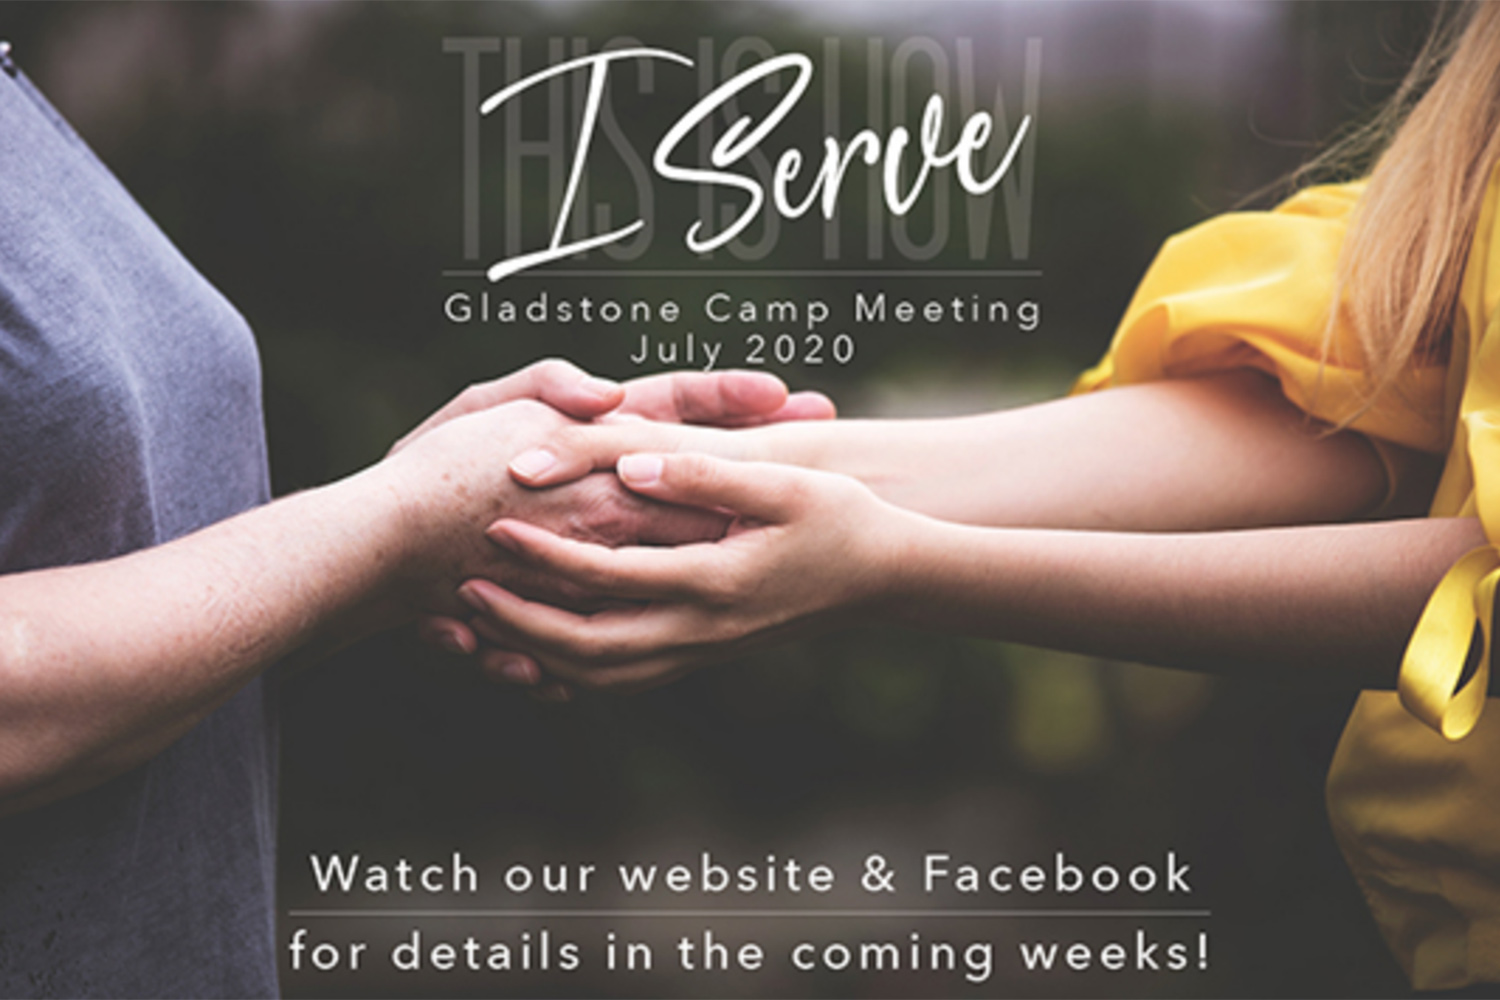 Virtual Camp Meeting Coming This Summer!